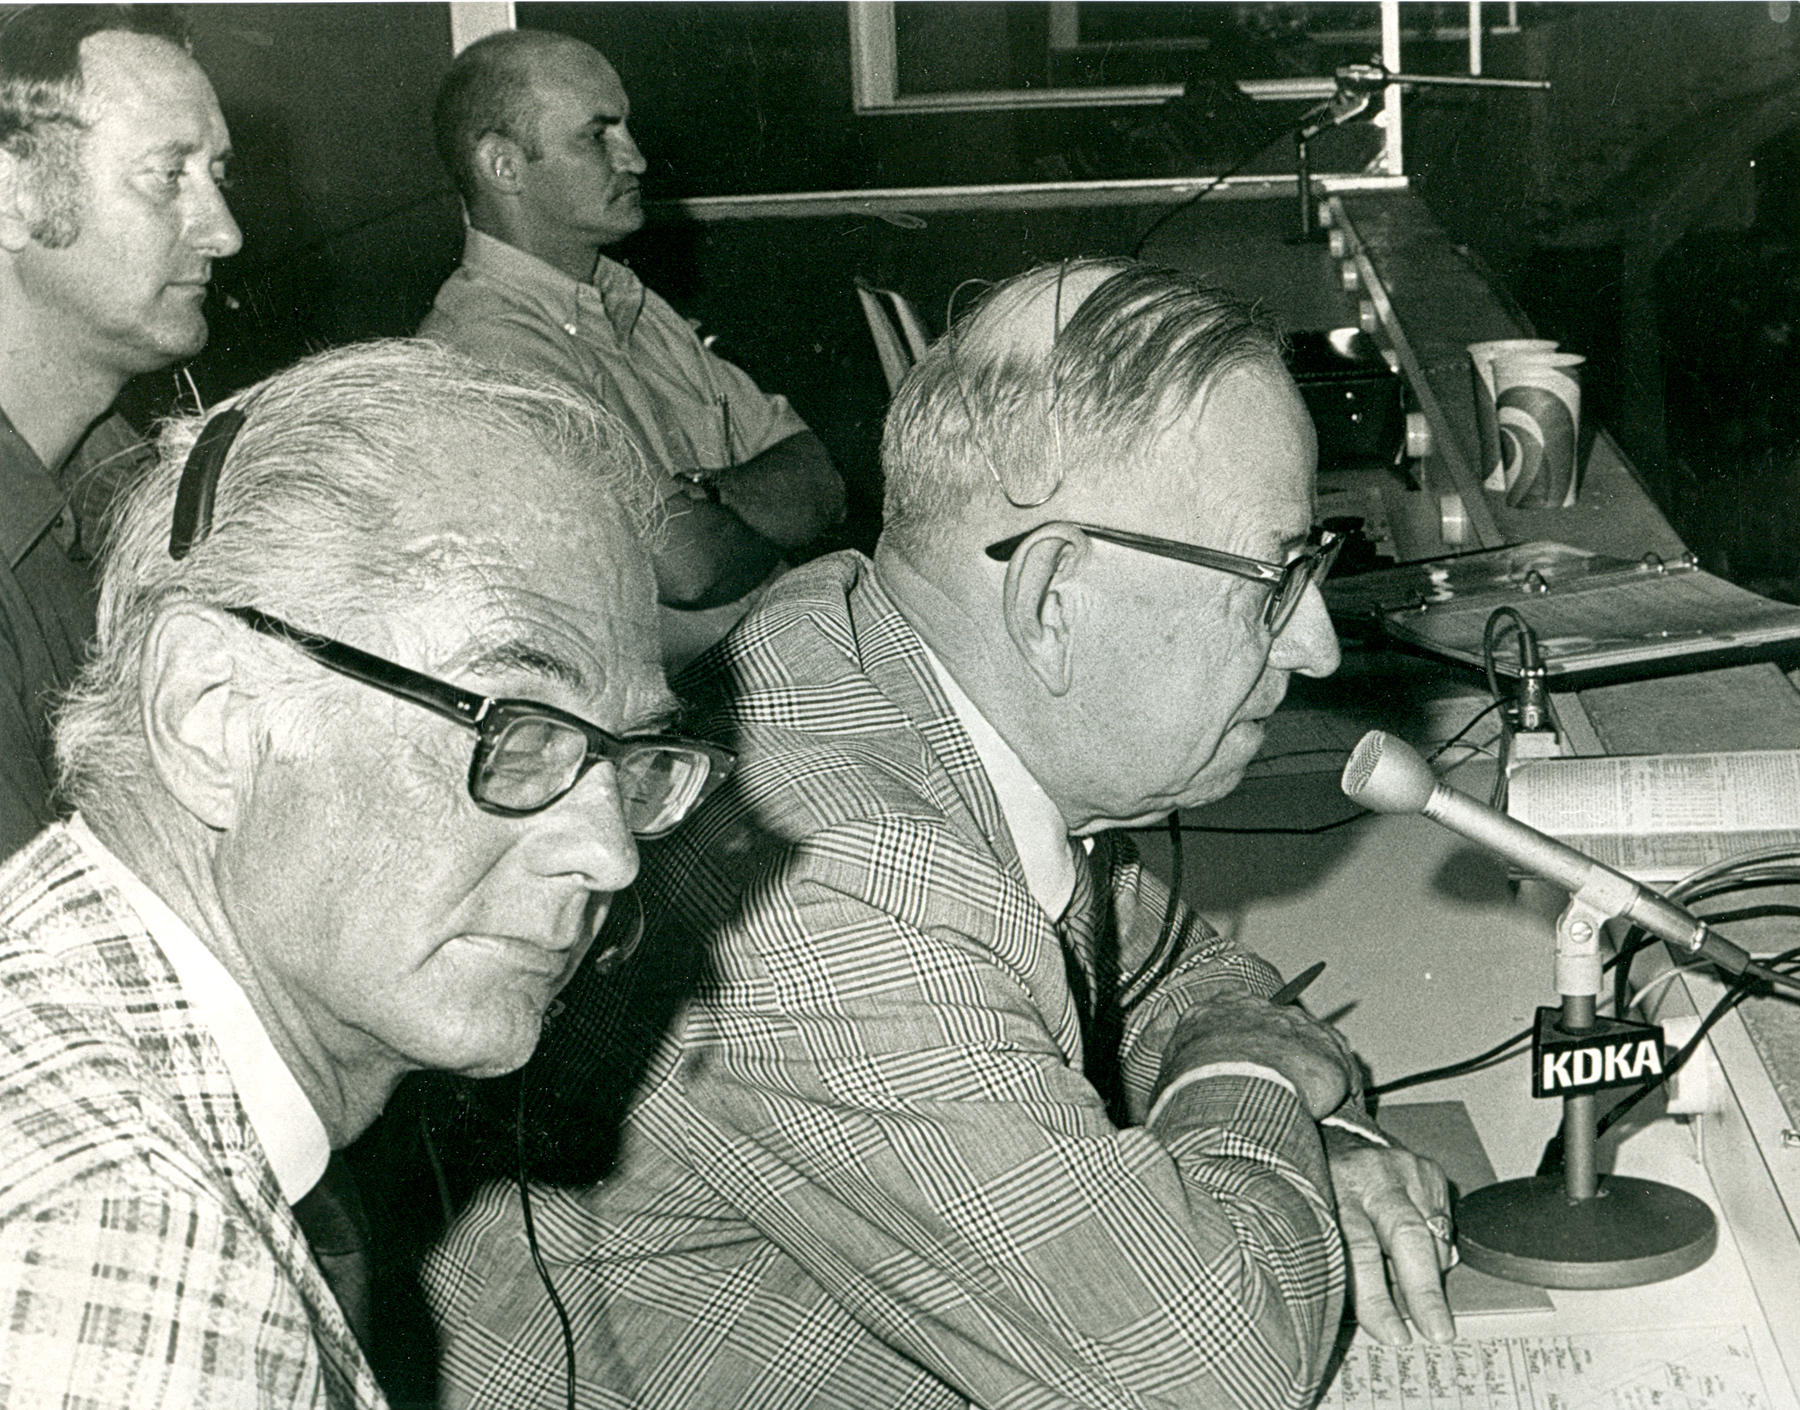 Harold Arlin, speaking into the microphone, on August 30, 1972. Bob Prince is in the forefront, on the left. BL-3050-84 (National Baseball Hall of Fame Library)